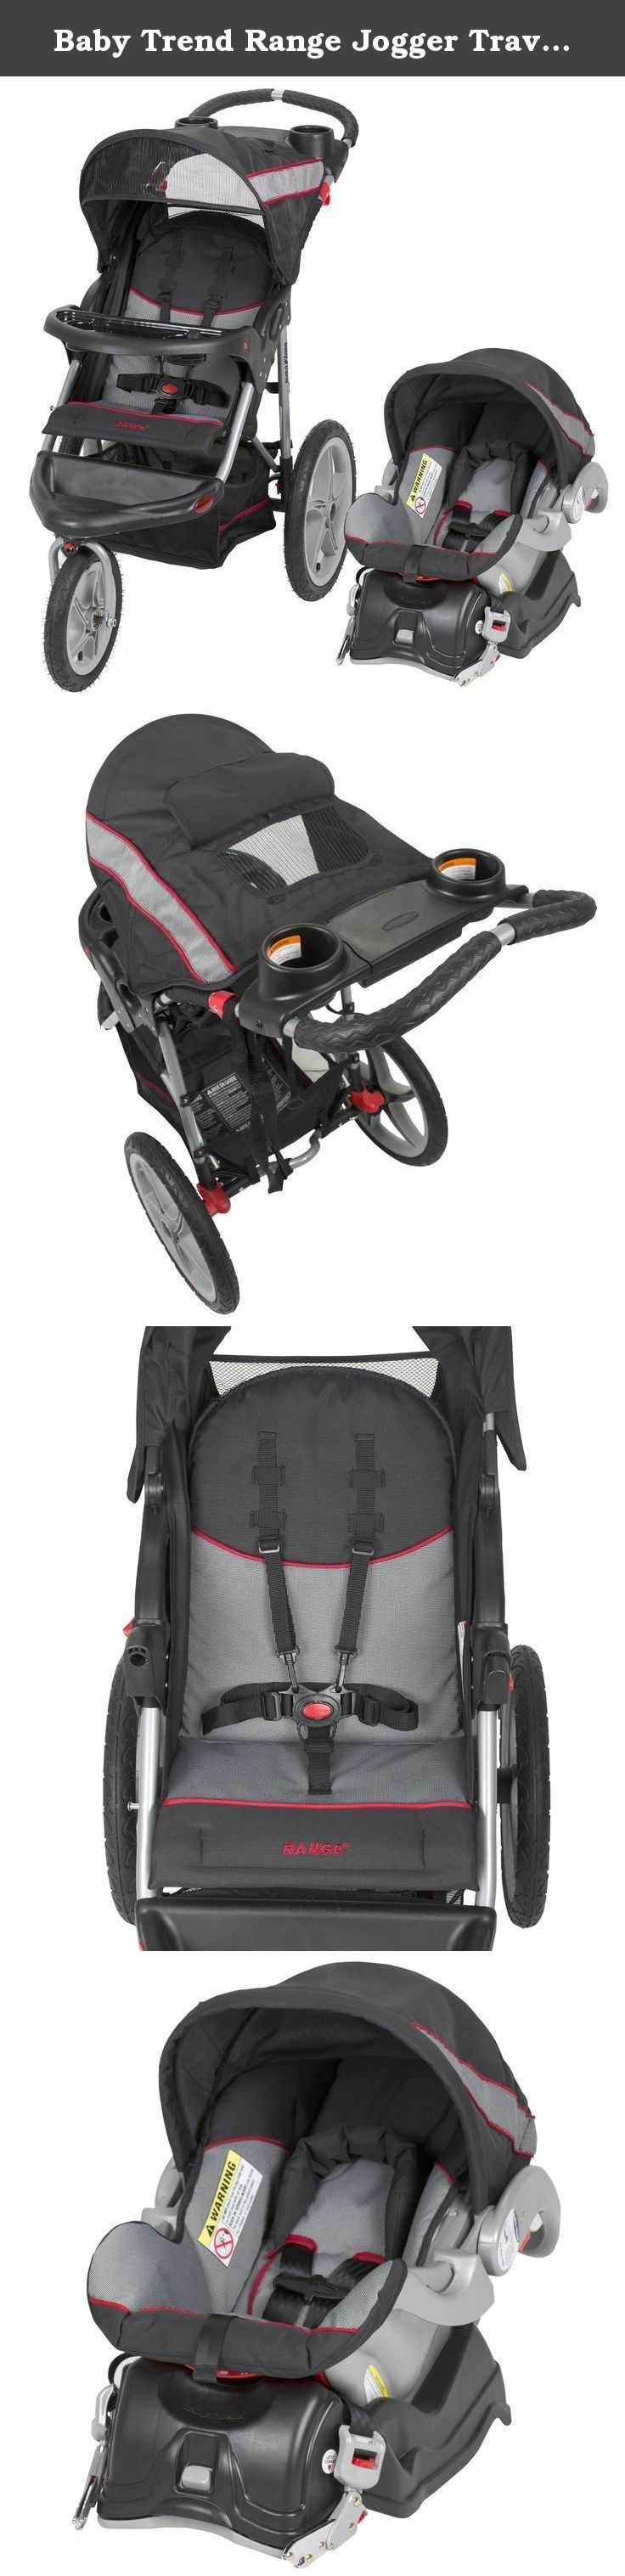 Baby Trend Range Jogger Travel System, Millennium. The